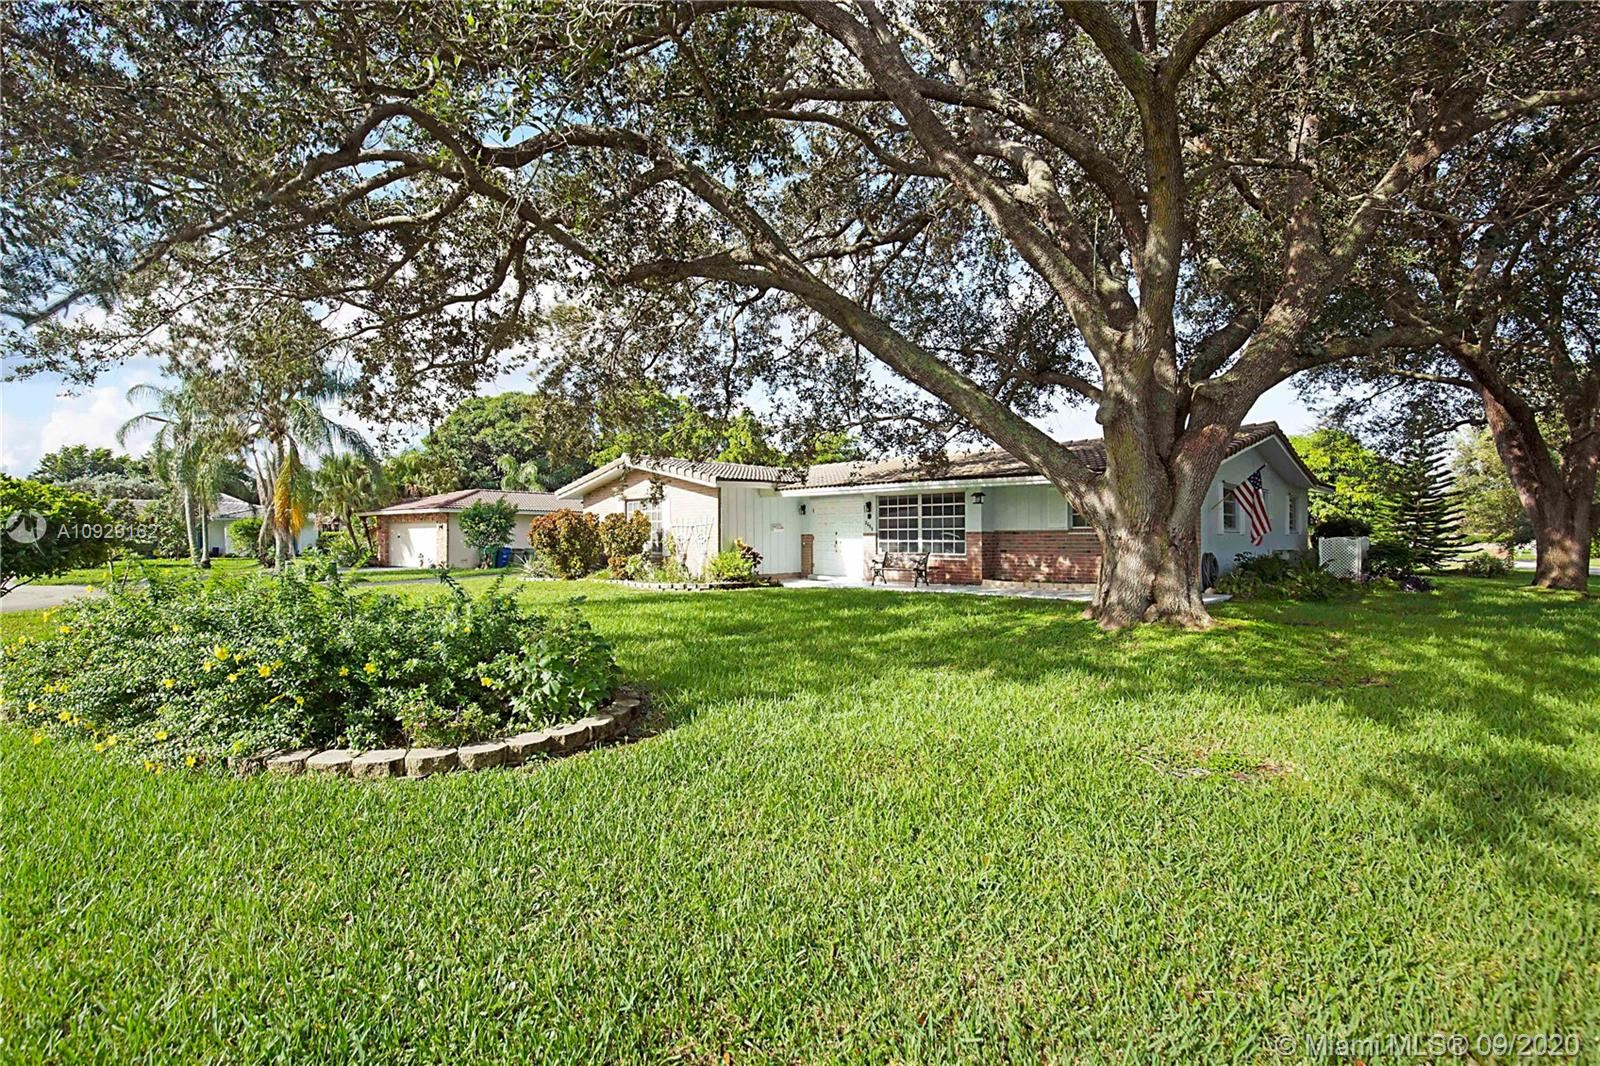 3690 NW 100th Ave, Coral Springs, FL 33065 - #: A10929162